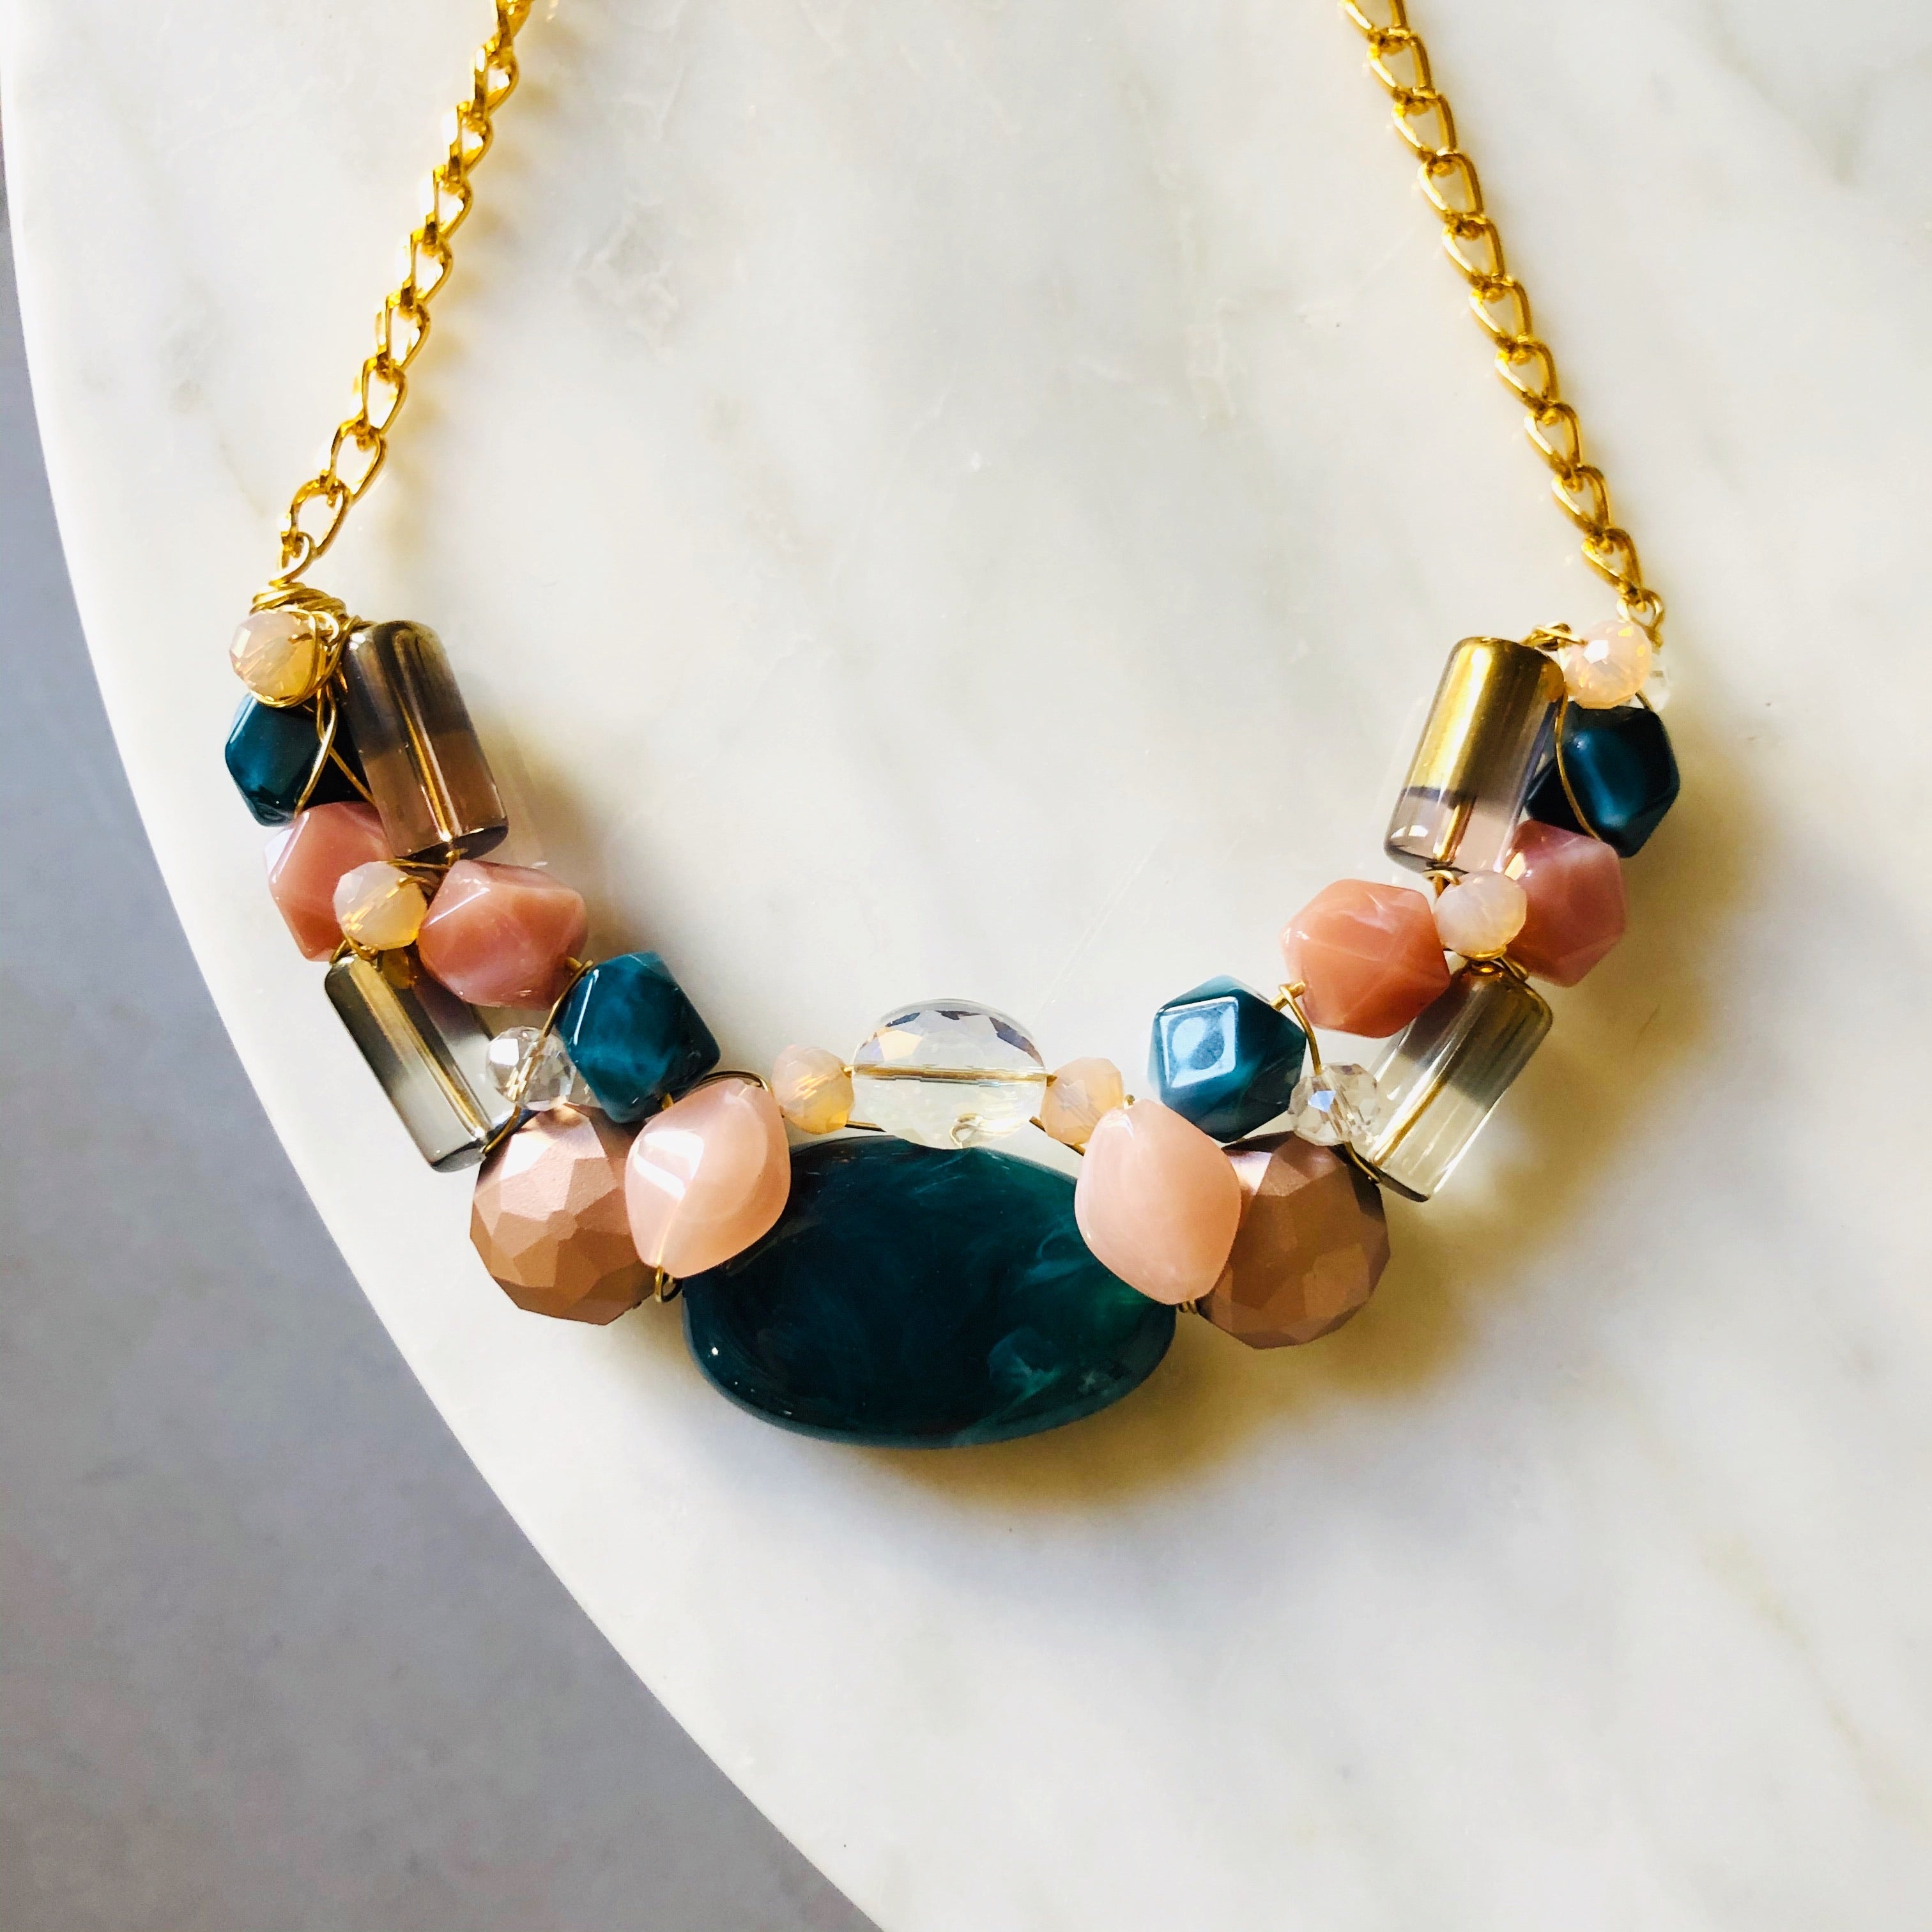 Dusty pink & teal statement necklace